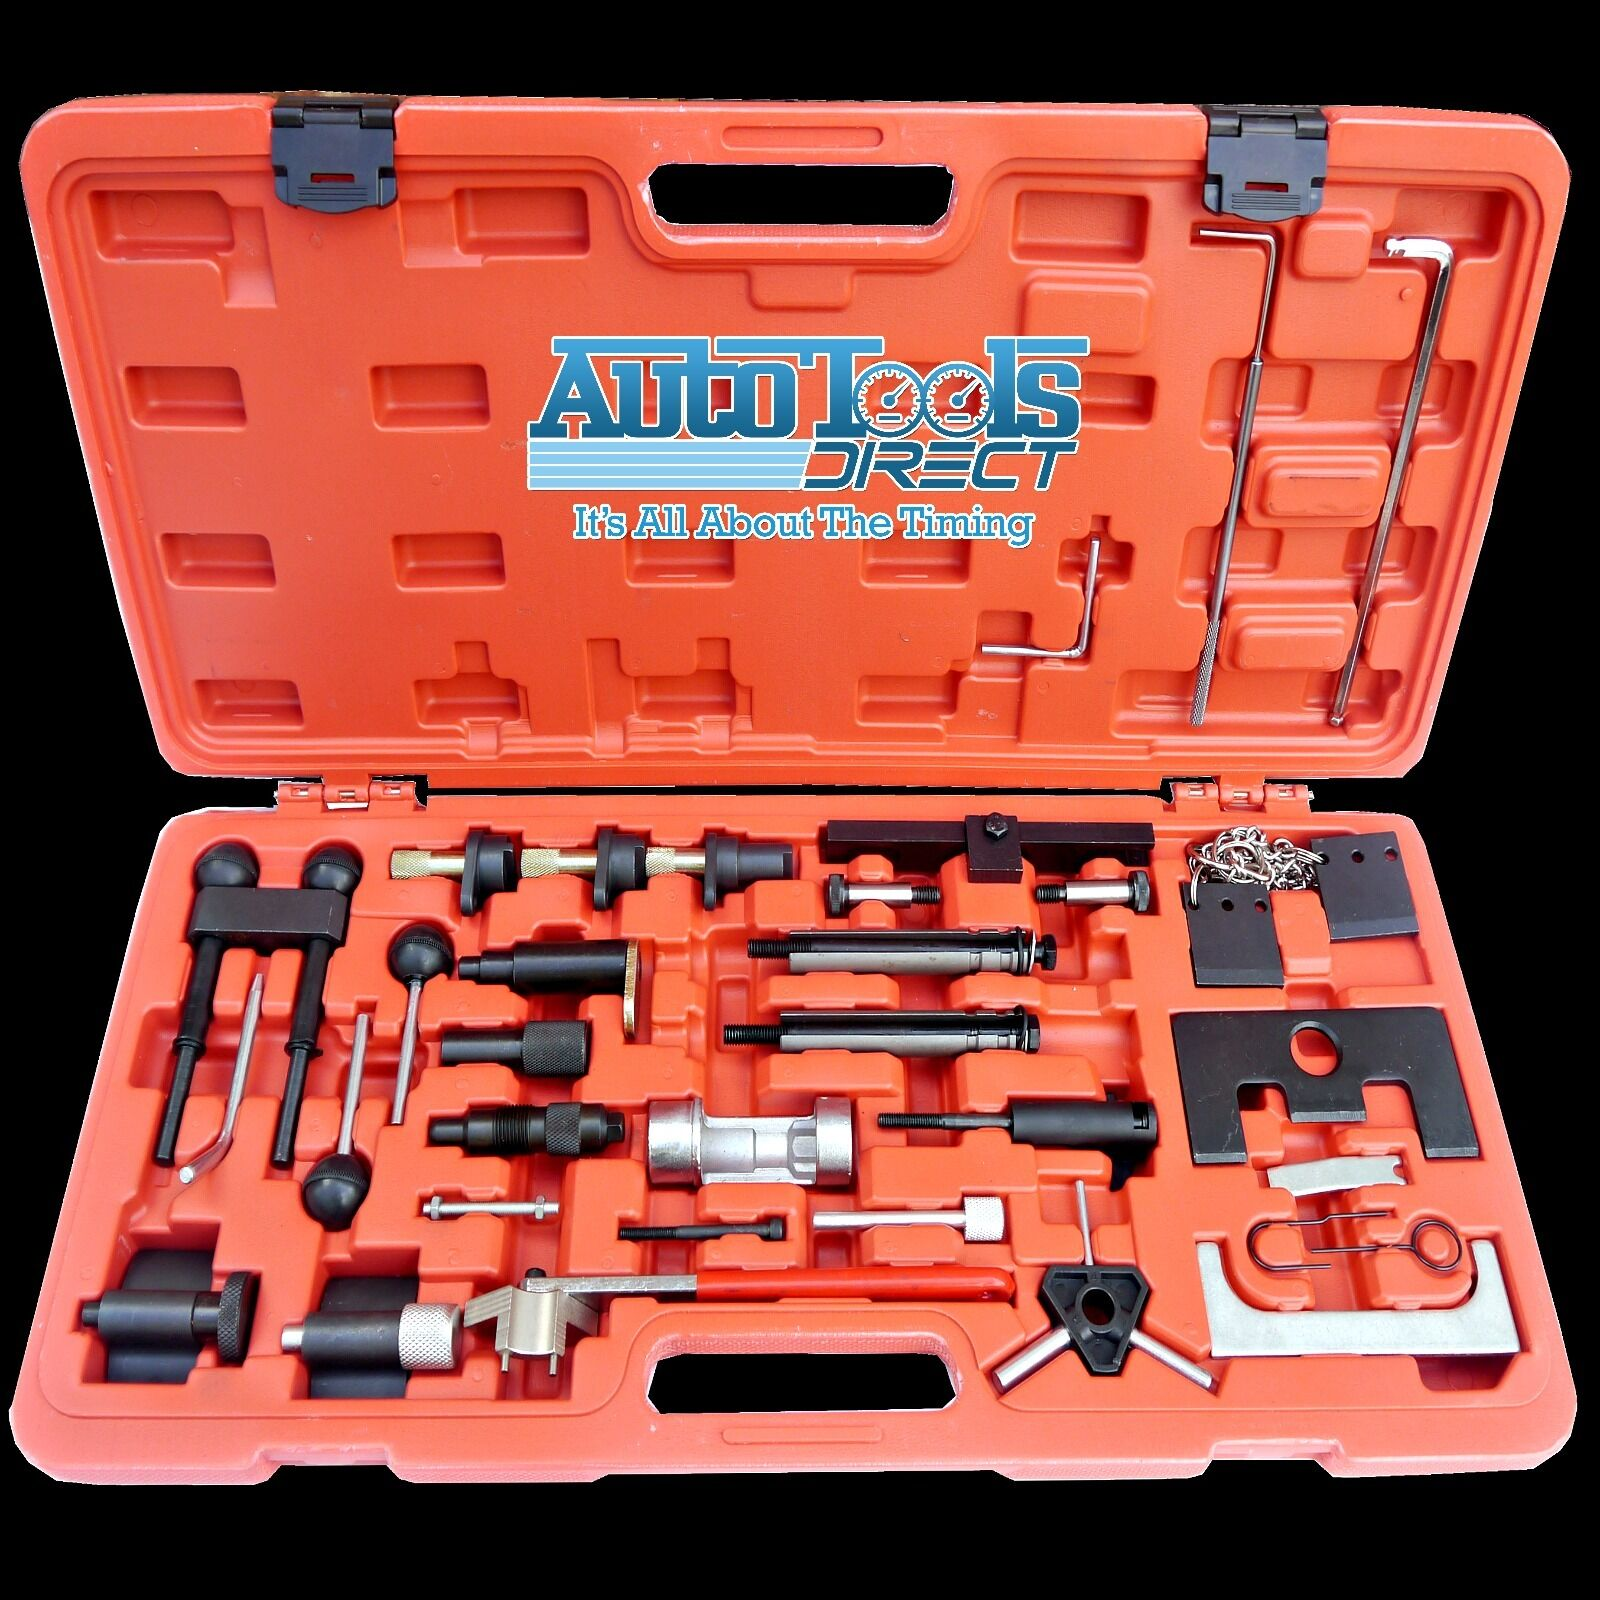 Vw 1600 Engine Removal: VW Timing Tool Kit Complete Master Kit VAG VW AUDI PETROL